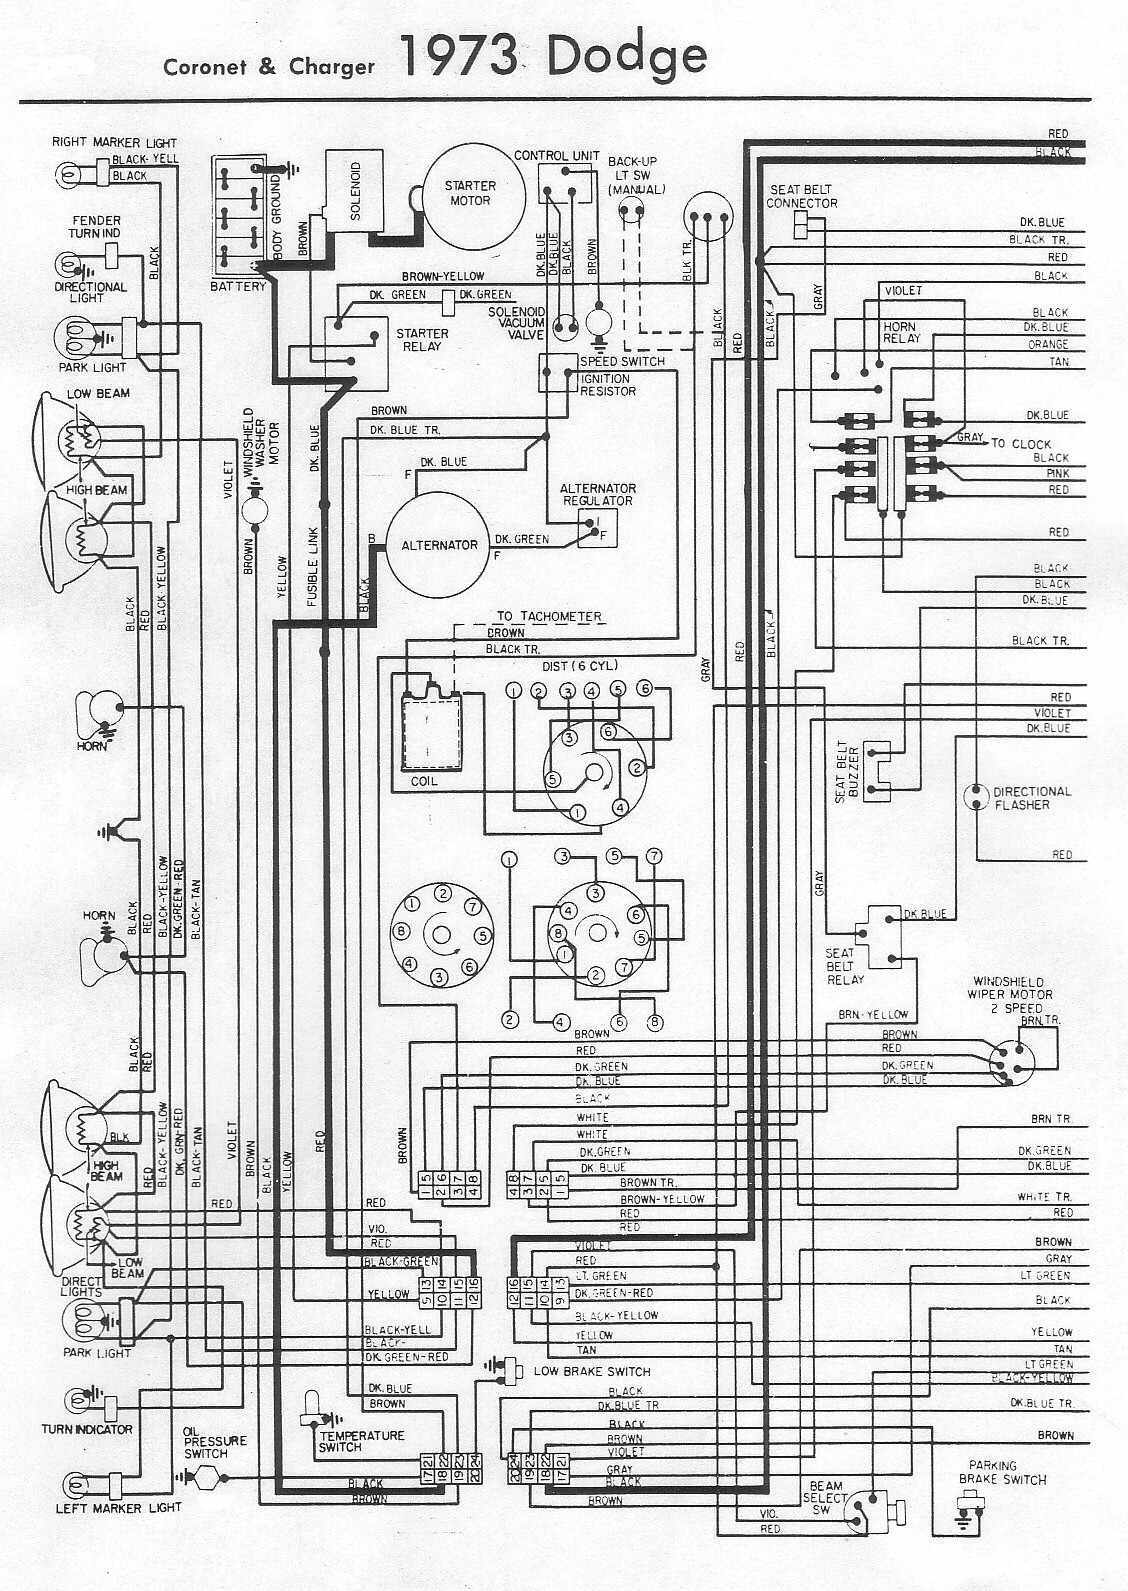 1964 dodge dart wiring diagram nf 2720  1973 dodge charger fuse box diagram schematic wiring  1973 dodge charger fuse box diagram